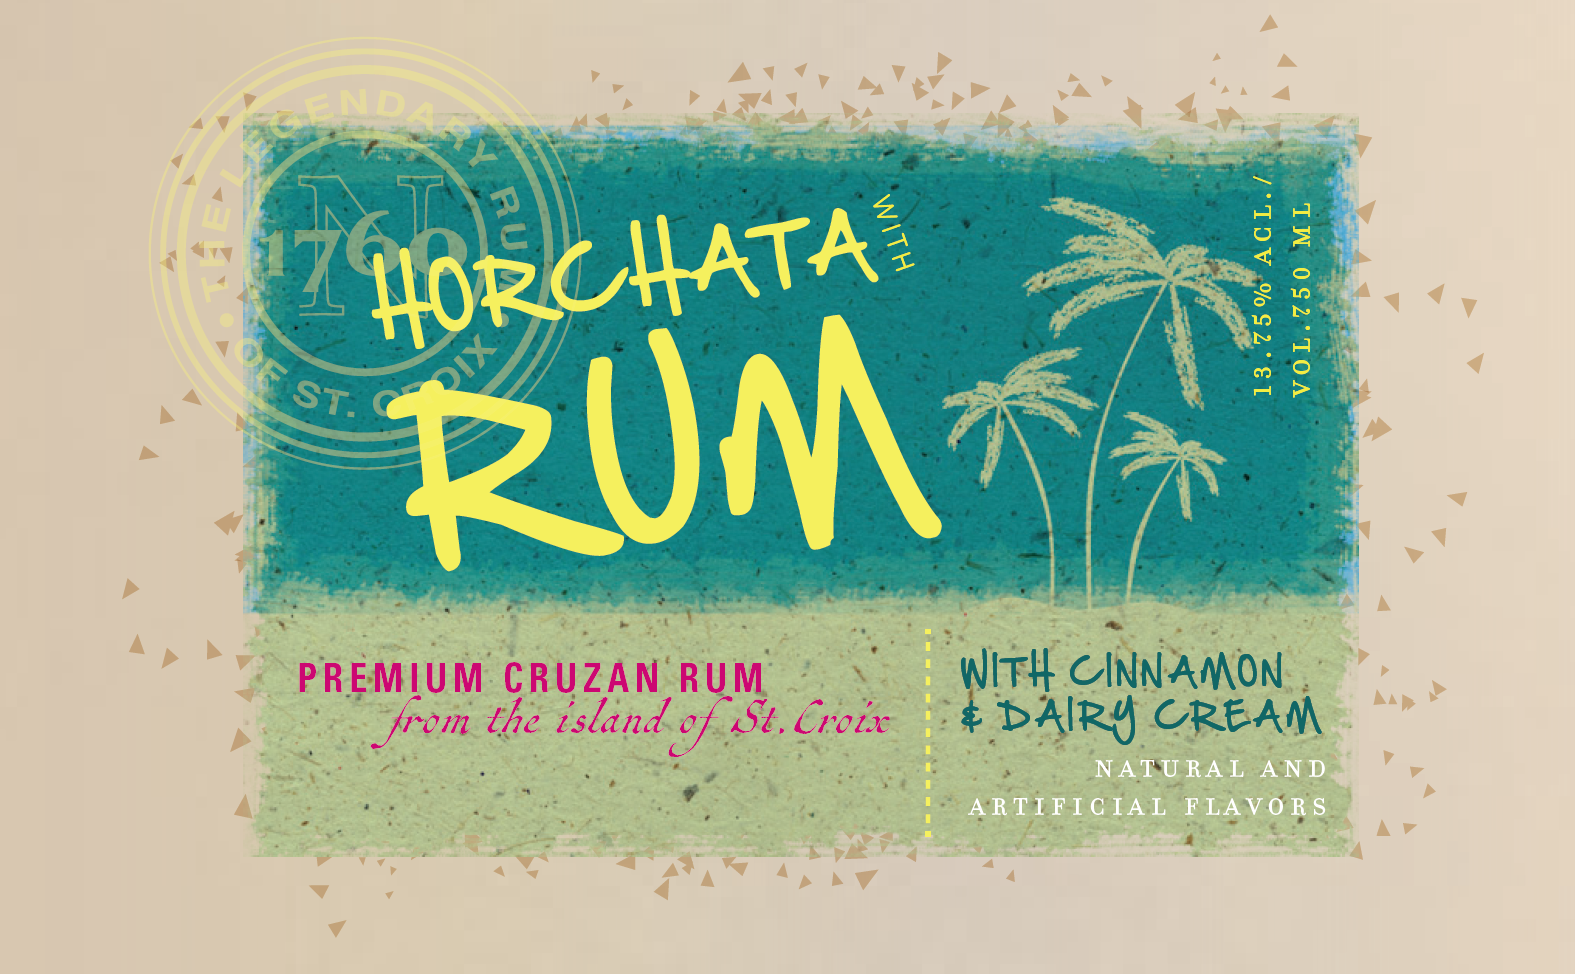 Horchata Rum Tropical Flavor Band  @LPK   Made from scratch, label representing horchata rum competing with rumchata - concept.